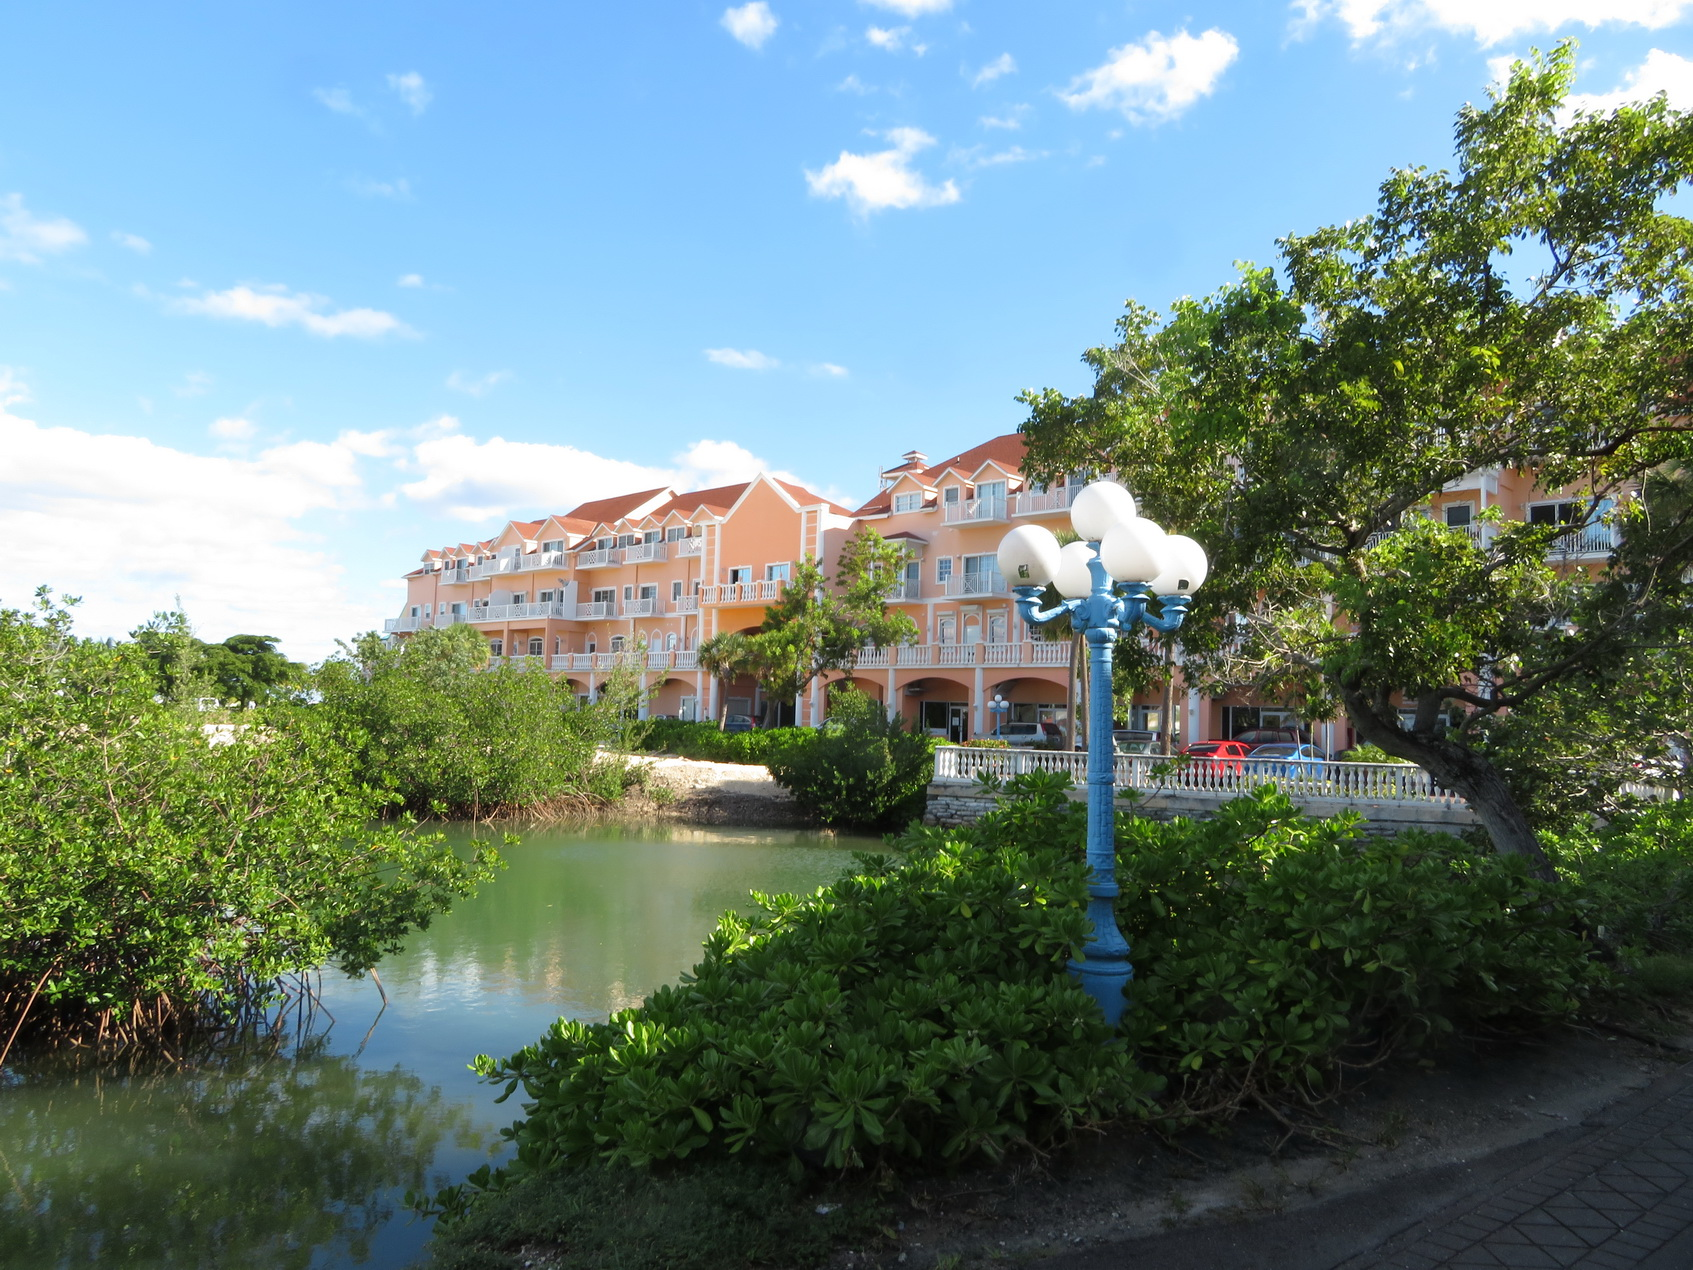 Co-op / Condo for Sale at Island lane, Sandyport Executive Condo - MLS 31736 Sandyport, Cable Beach, Nassau And Paradise Island Bahamas